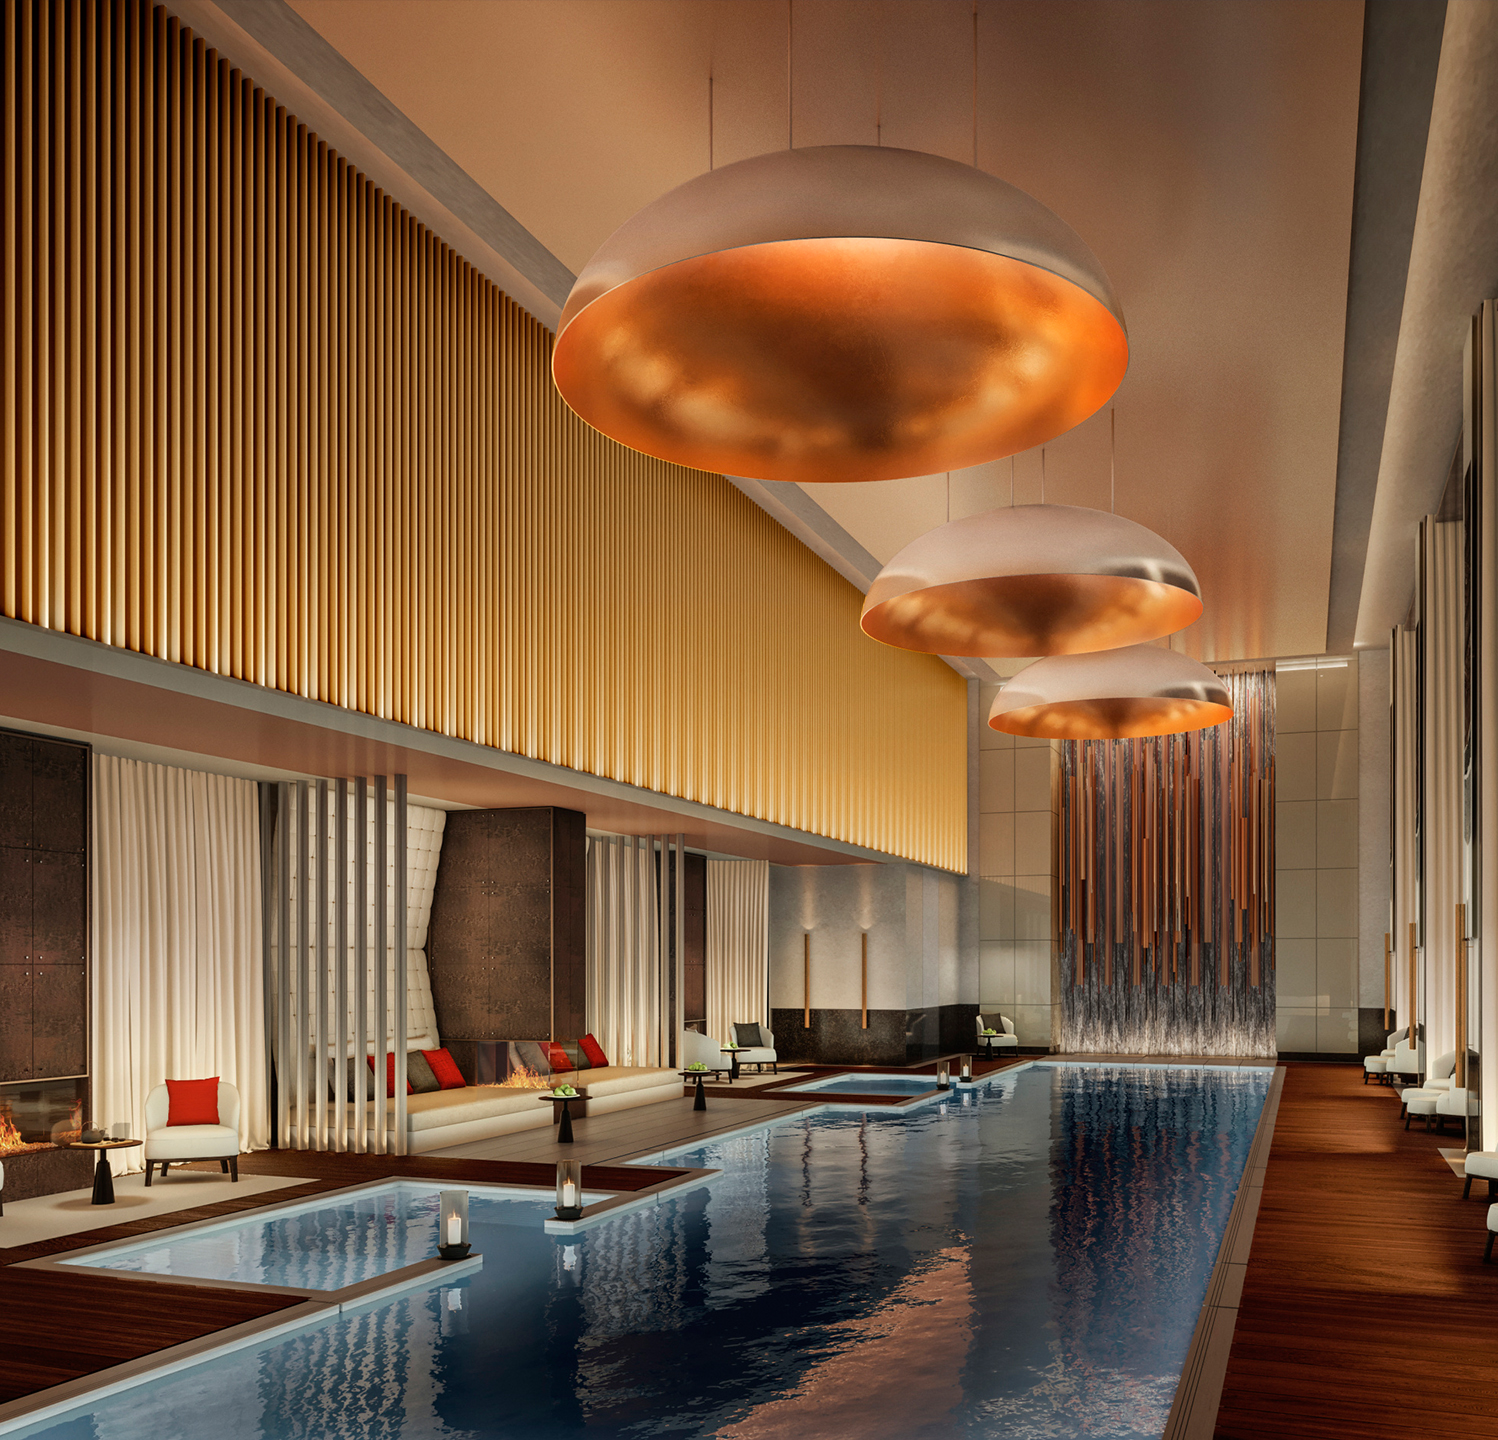 Aman New York will be designed by architect Jean-Michel Gathy of Denniston.